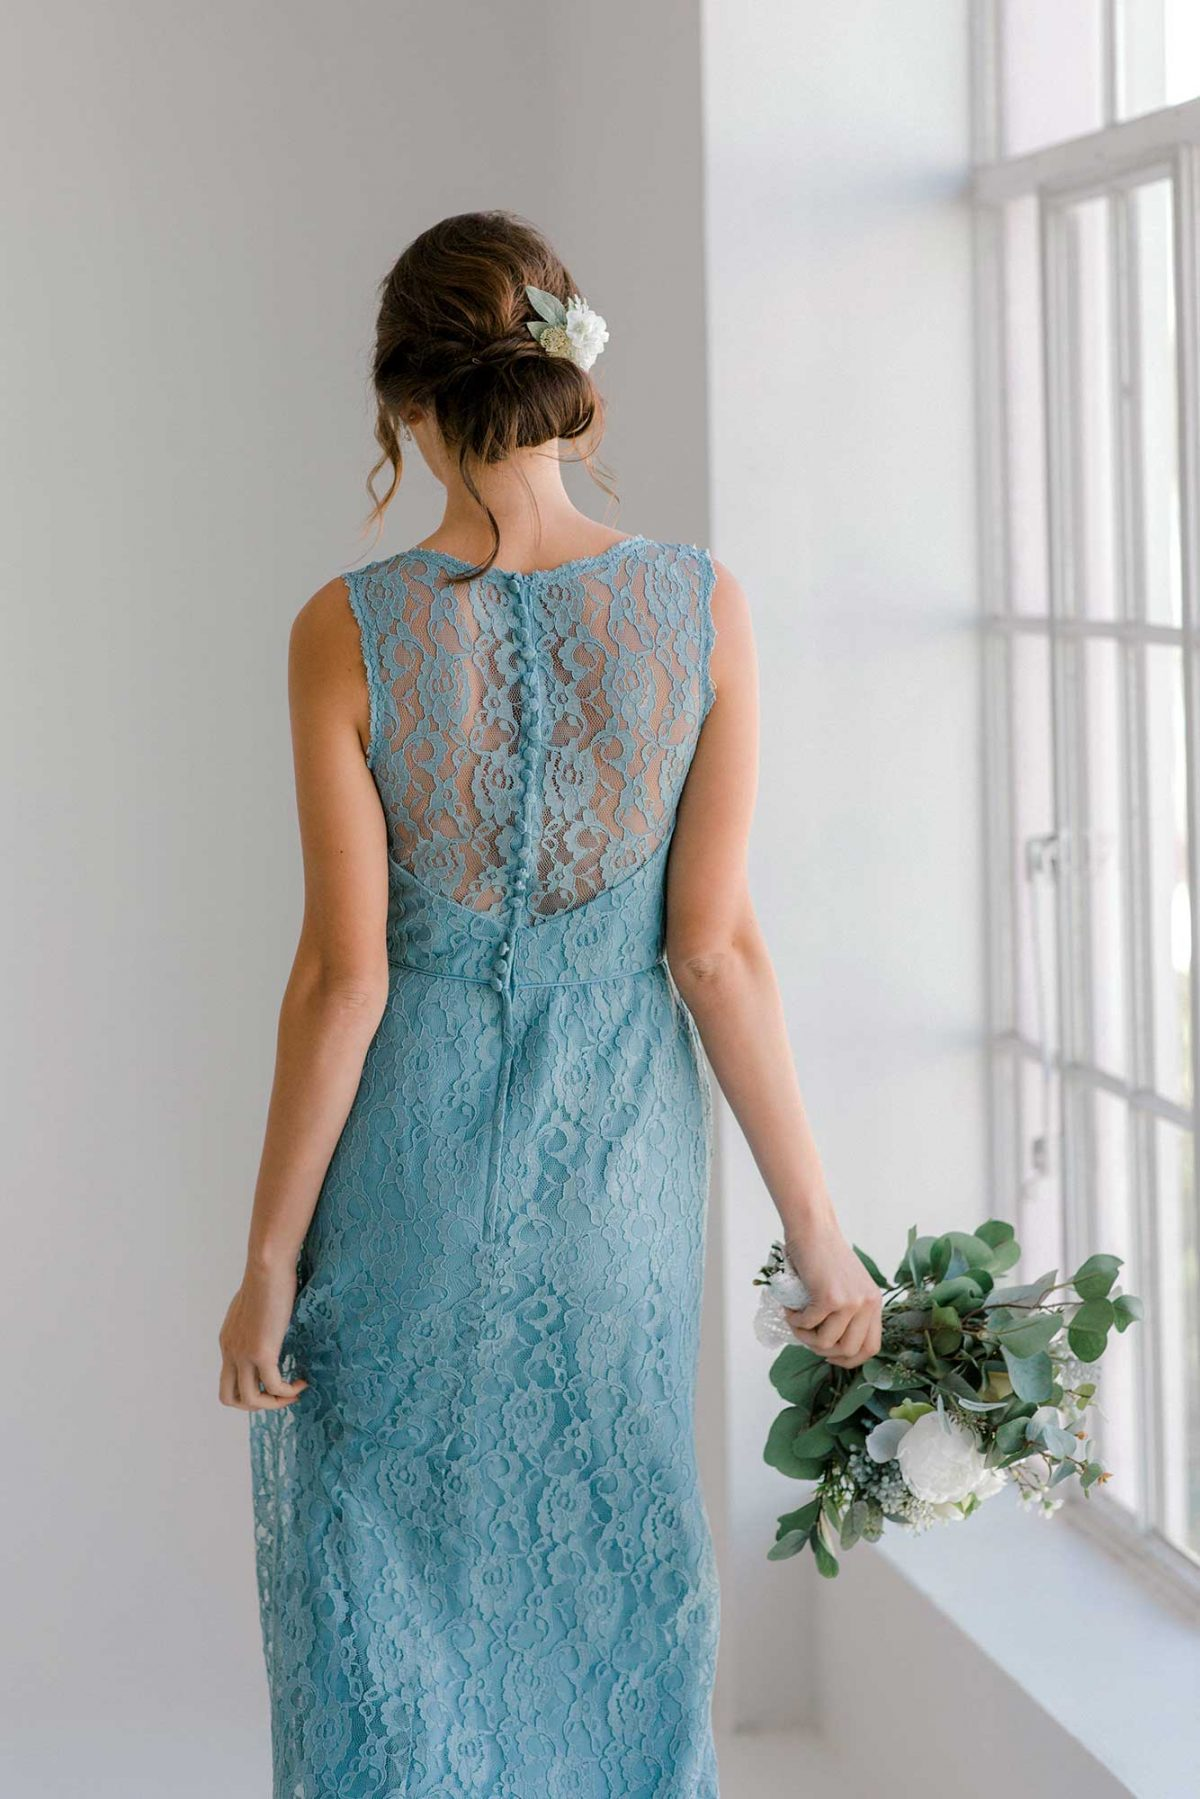 Maise lace dress in once upon a time colour back view